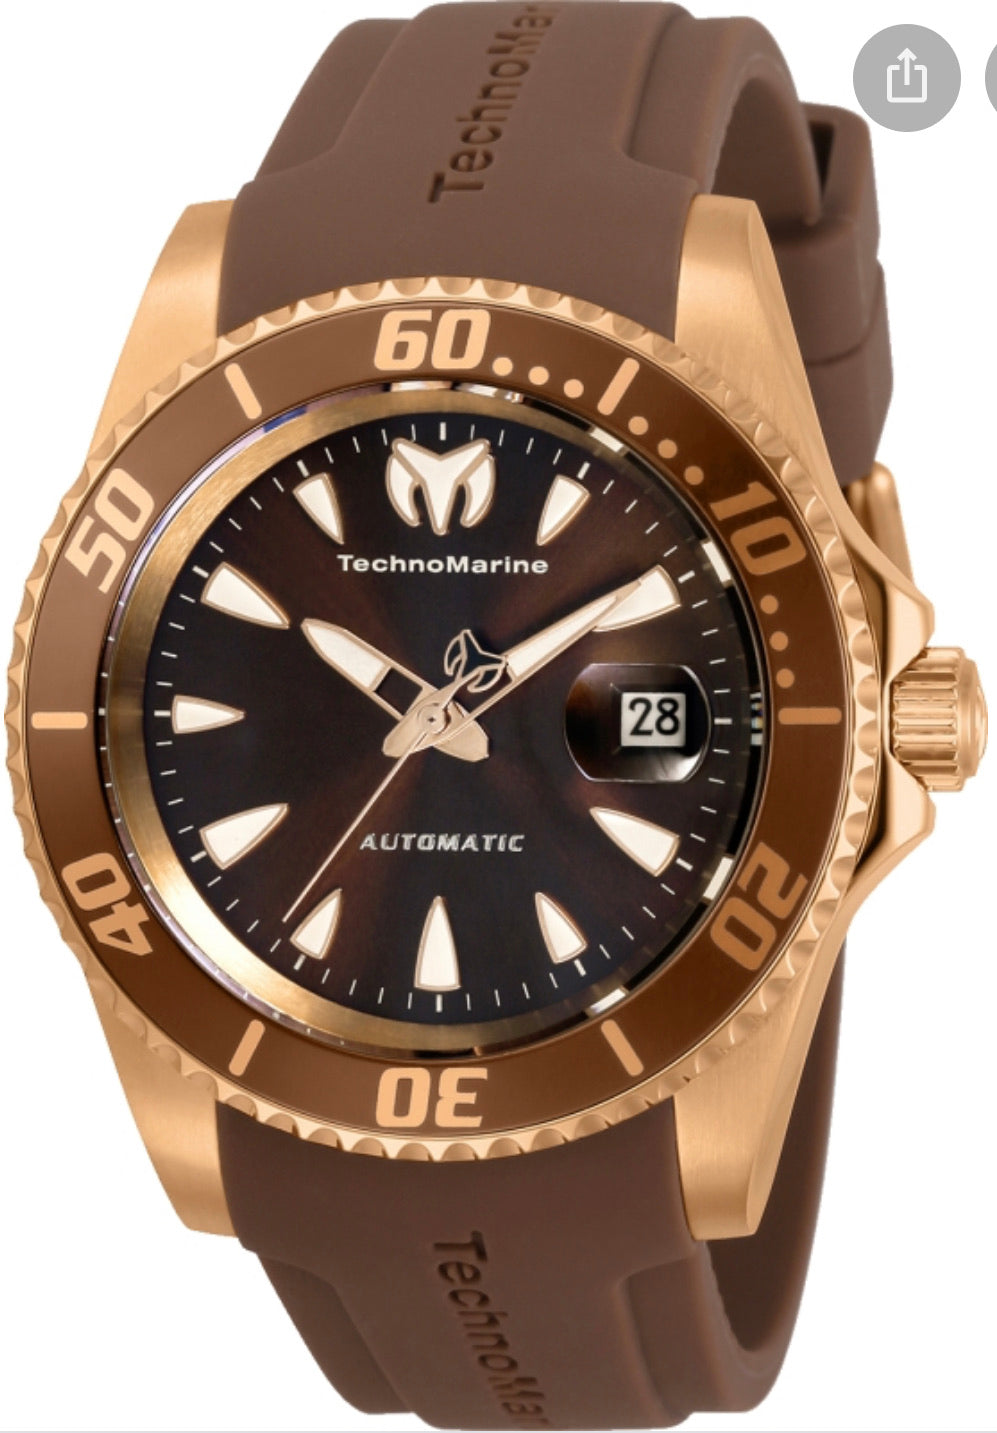 TechnoMarine Sea Manta TM-219089. Sea Automatic / Manta Collection. Ladies Watch TM-219089 - Boutique Watches & More